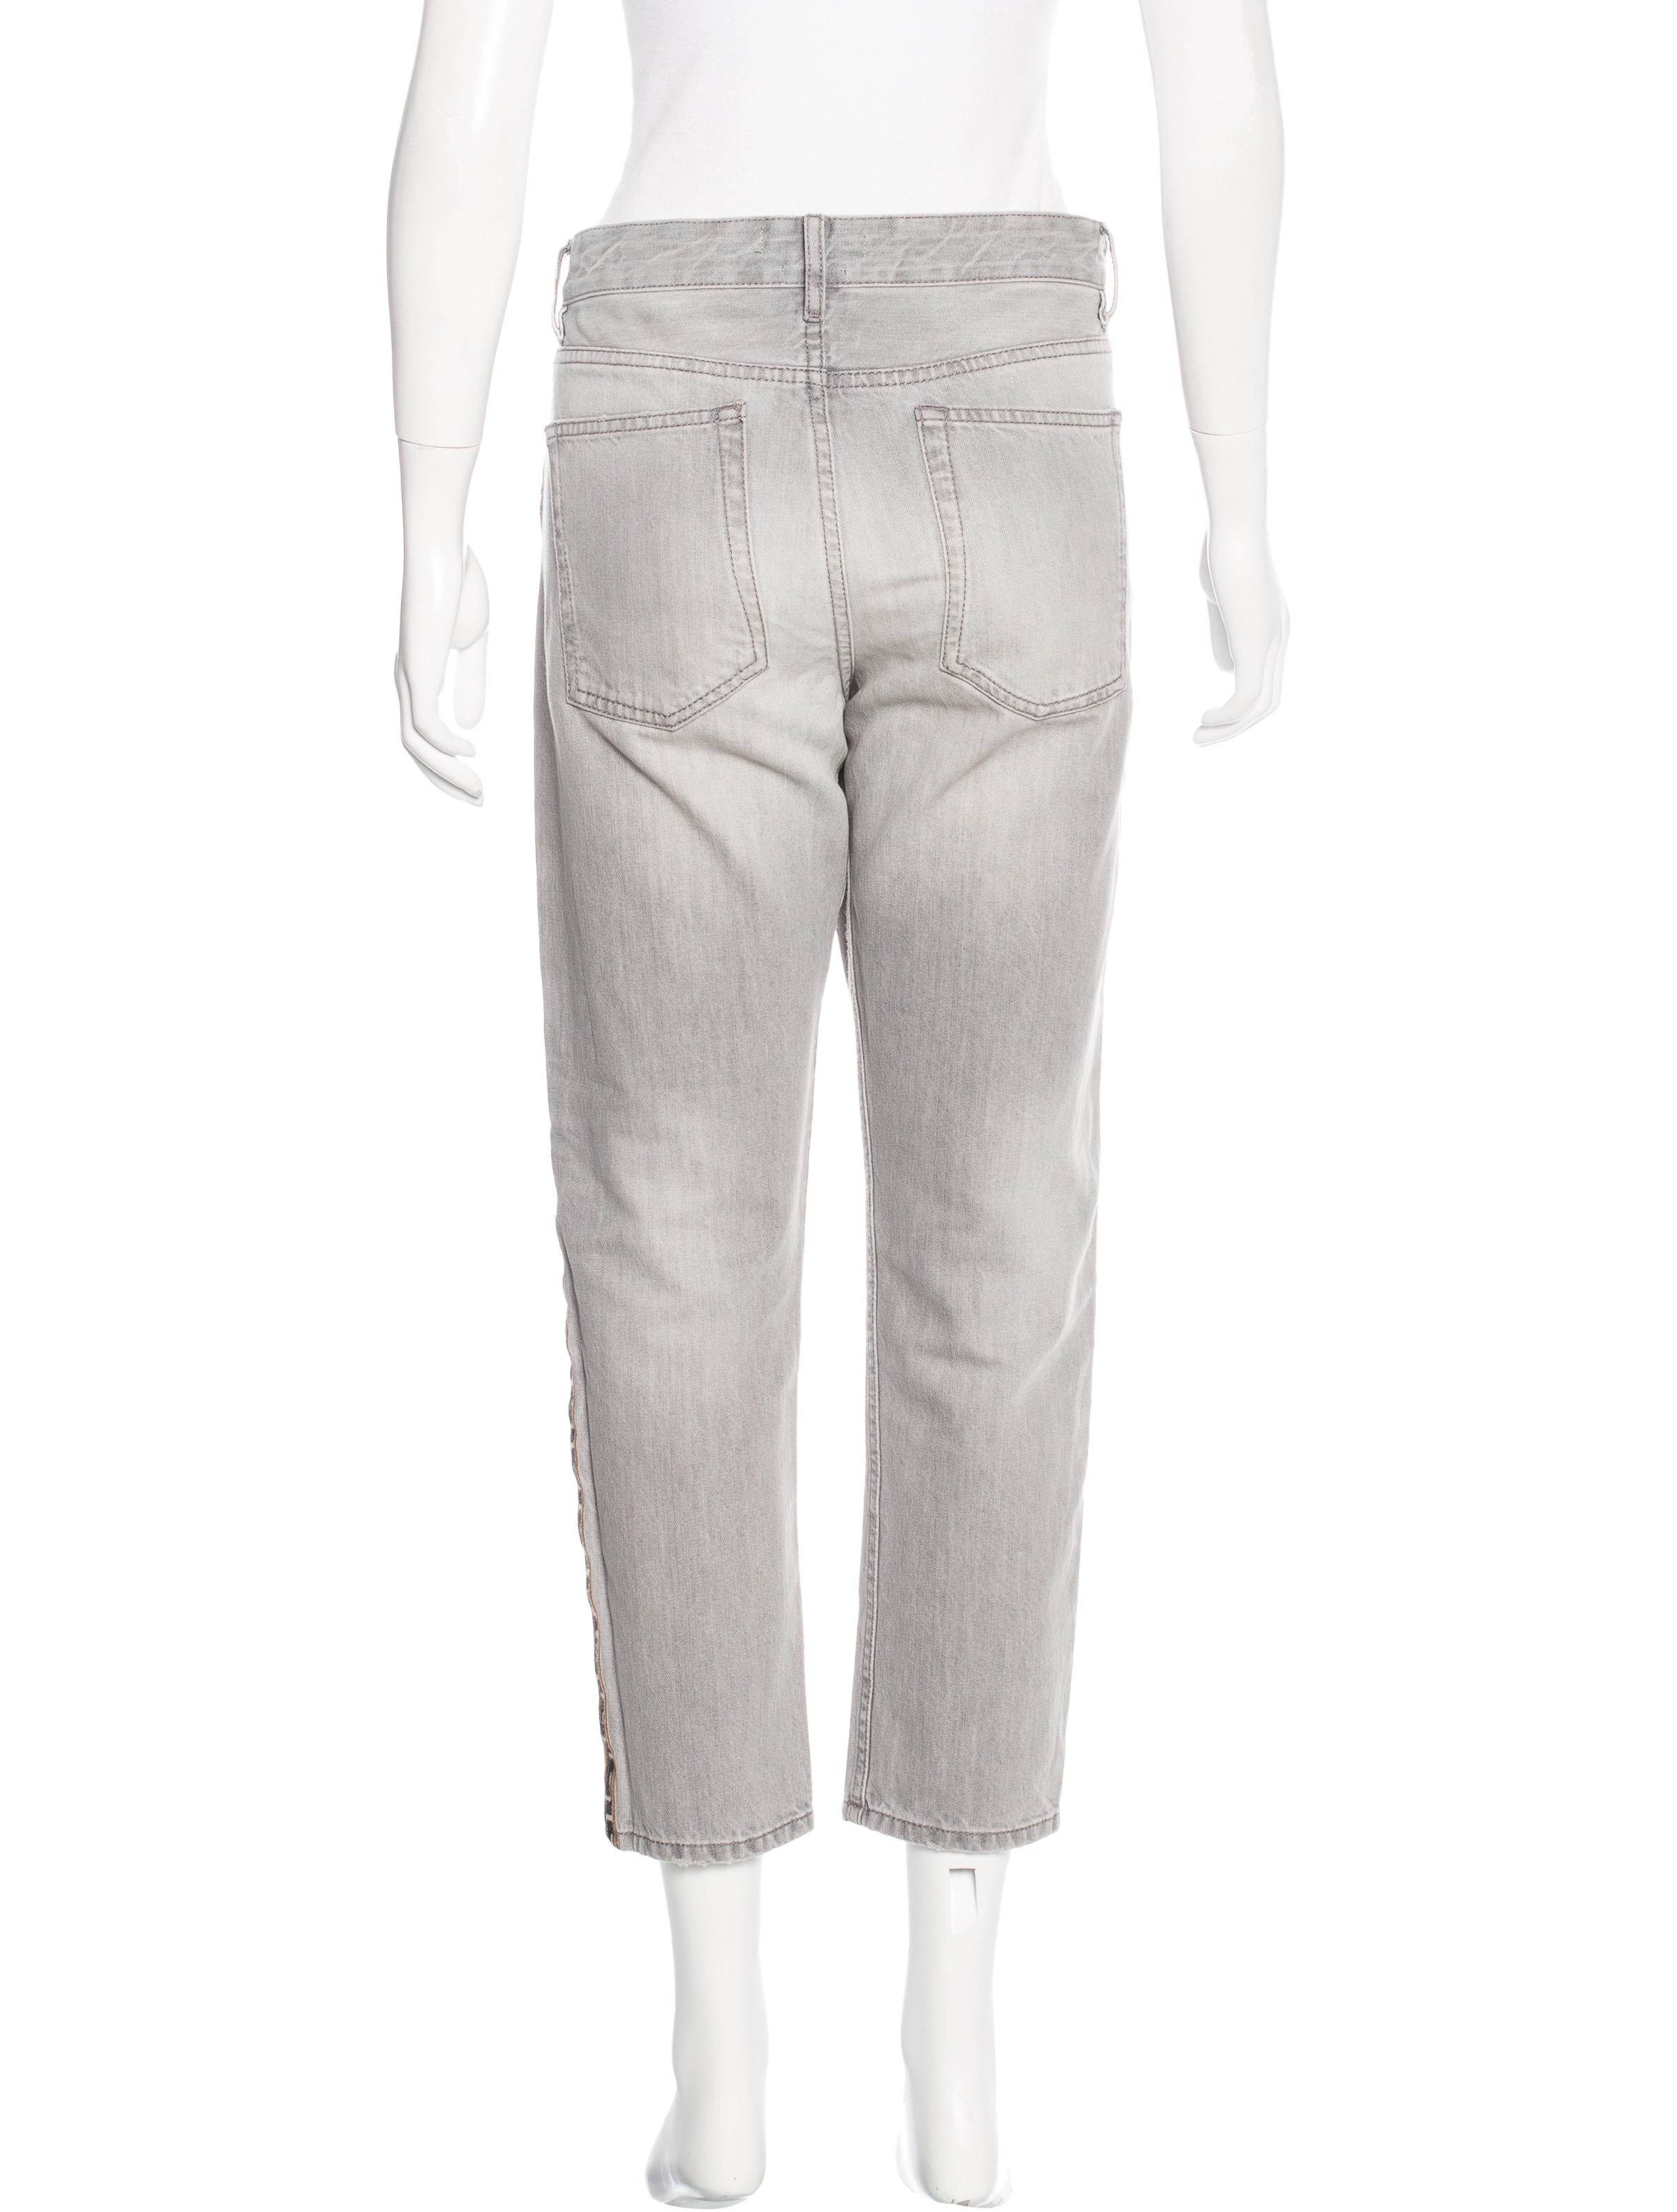 Étoile isabel marant embroidered cropped jeans pants